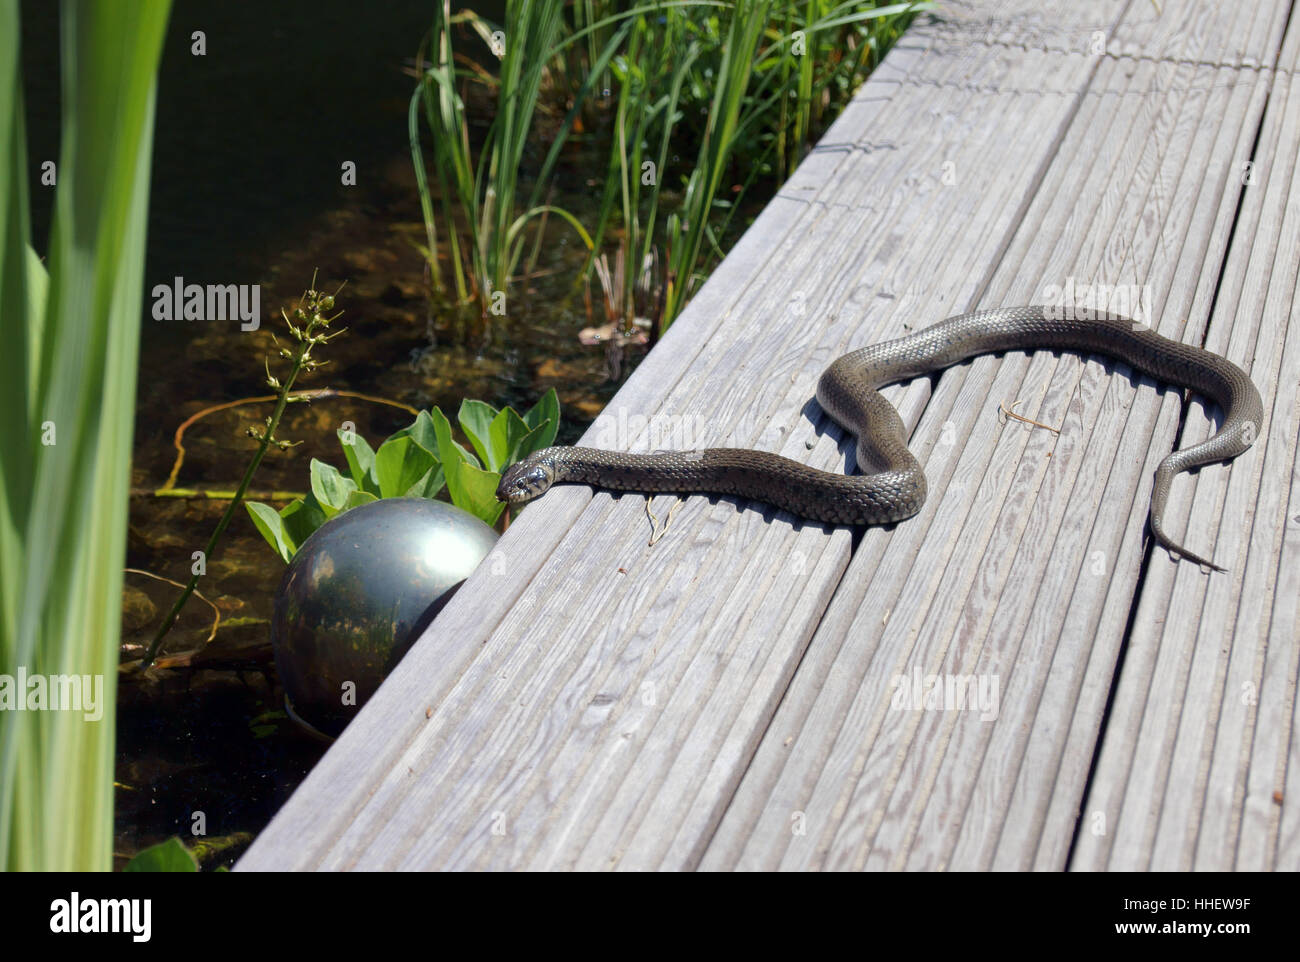 Animal Reptile Snake Fresh Water Pond Grass Nature Aerial